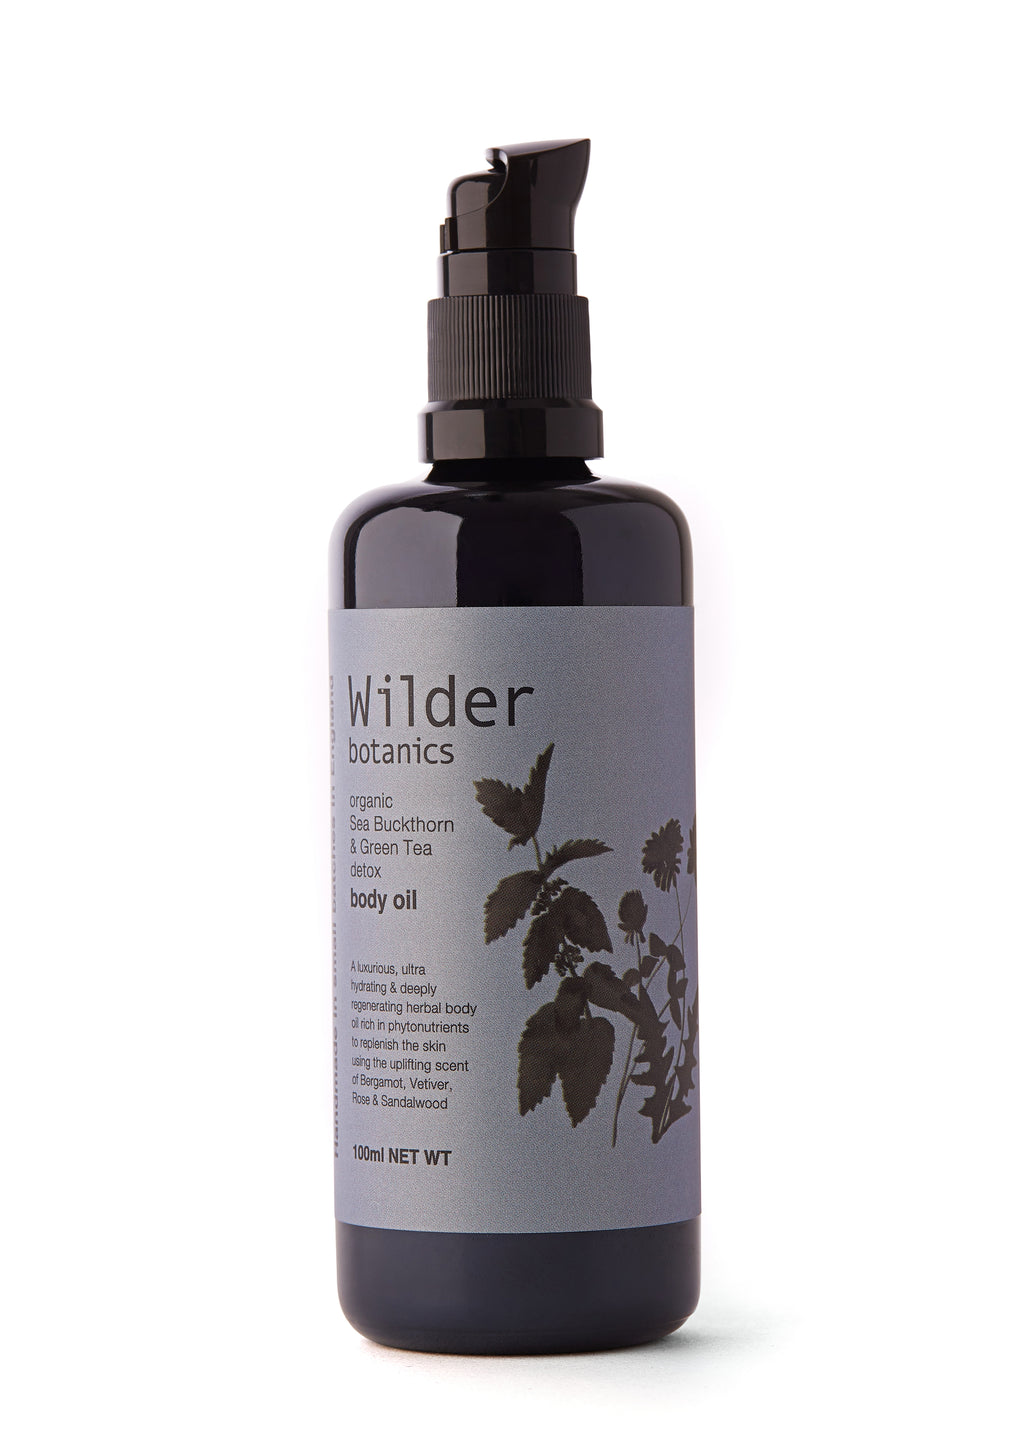 Wilder Botanics | Organic Sea Buckthorn & Green Tea Body Oil